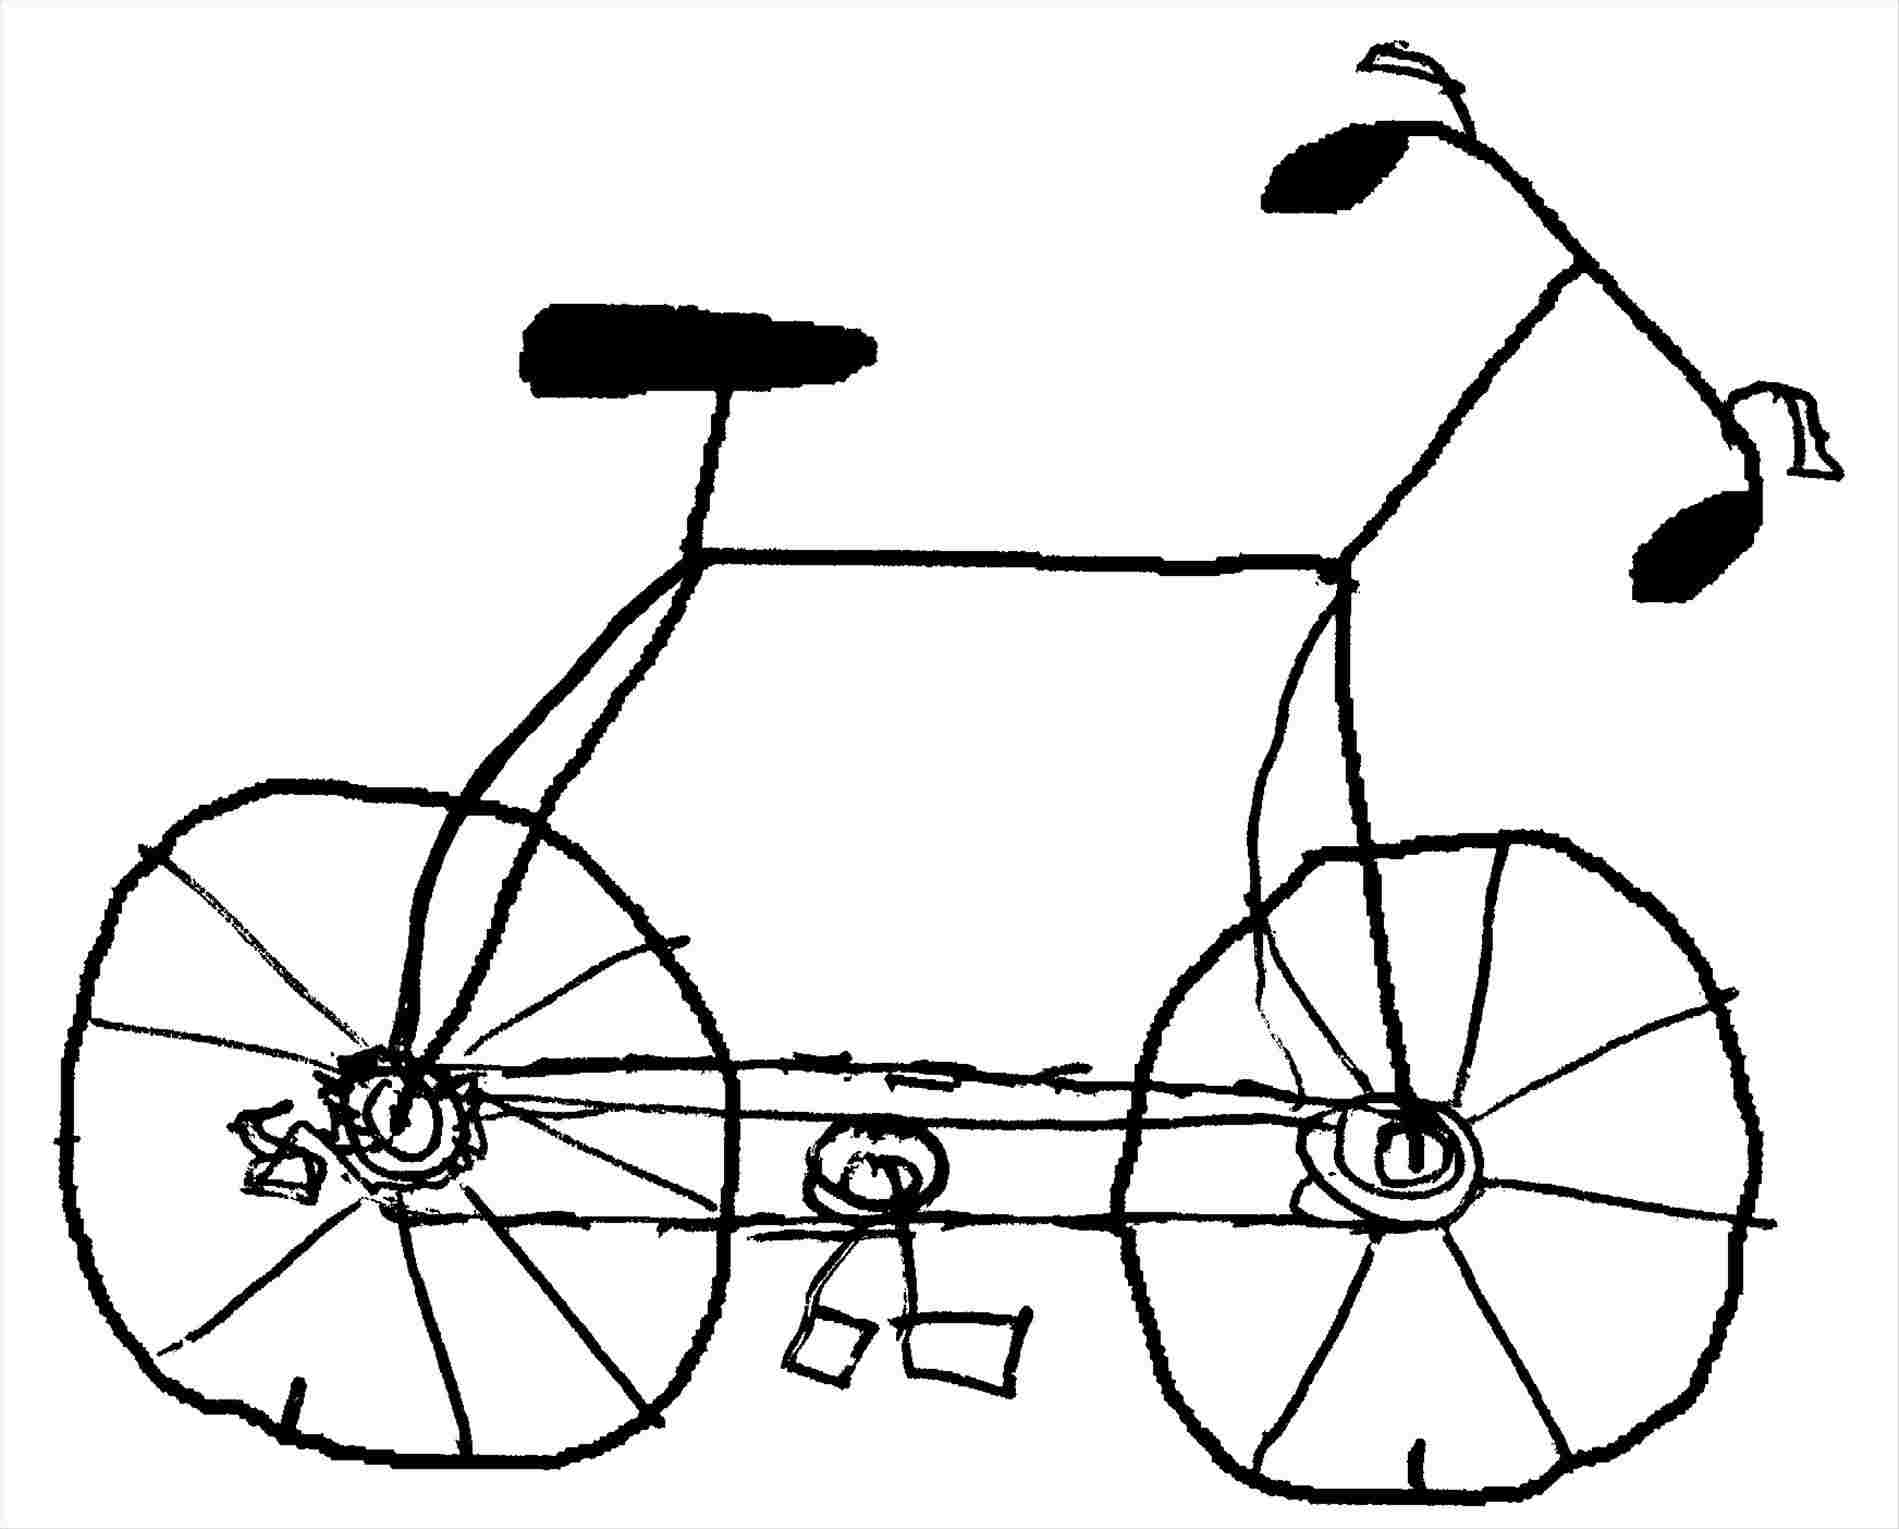 1899x1529 Easy Motorcycle Drawing For Kids